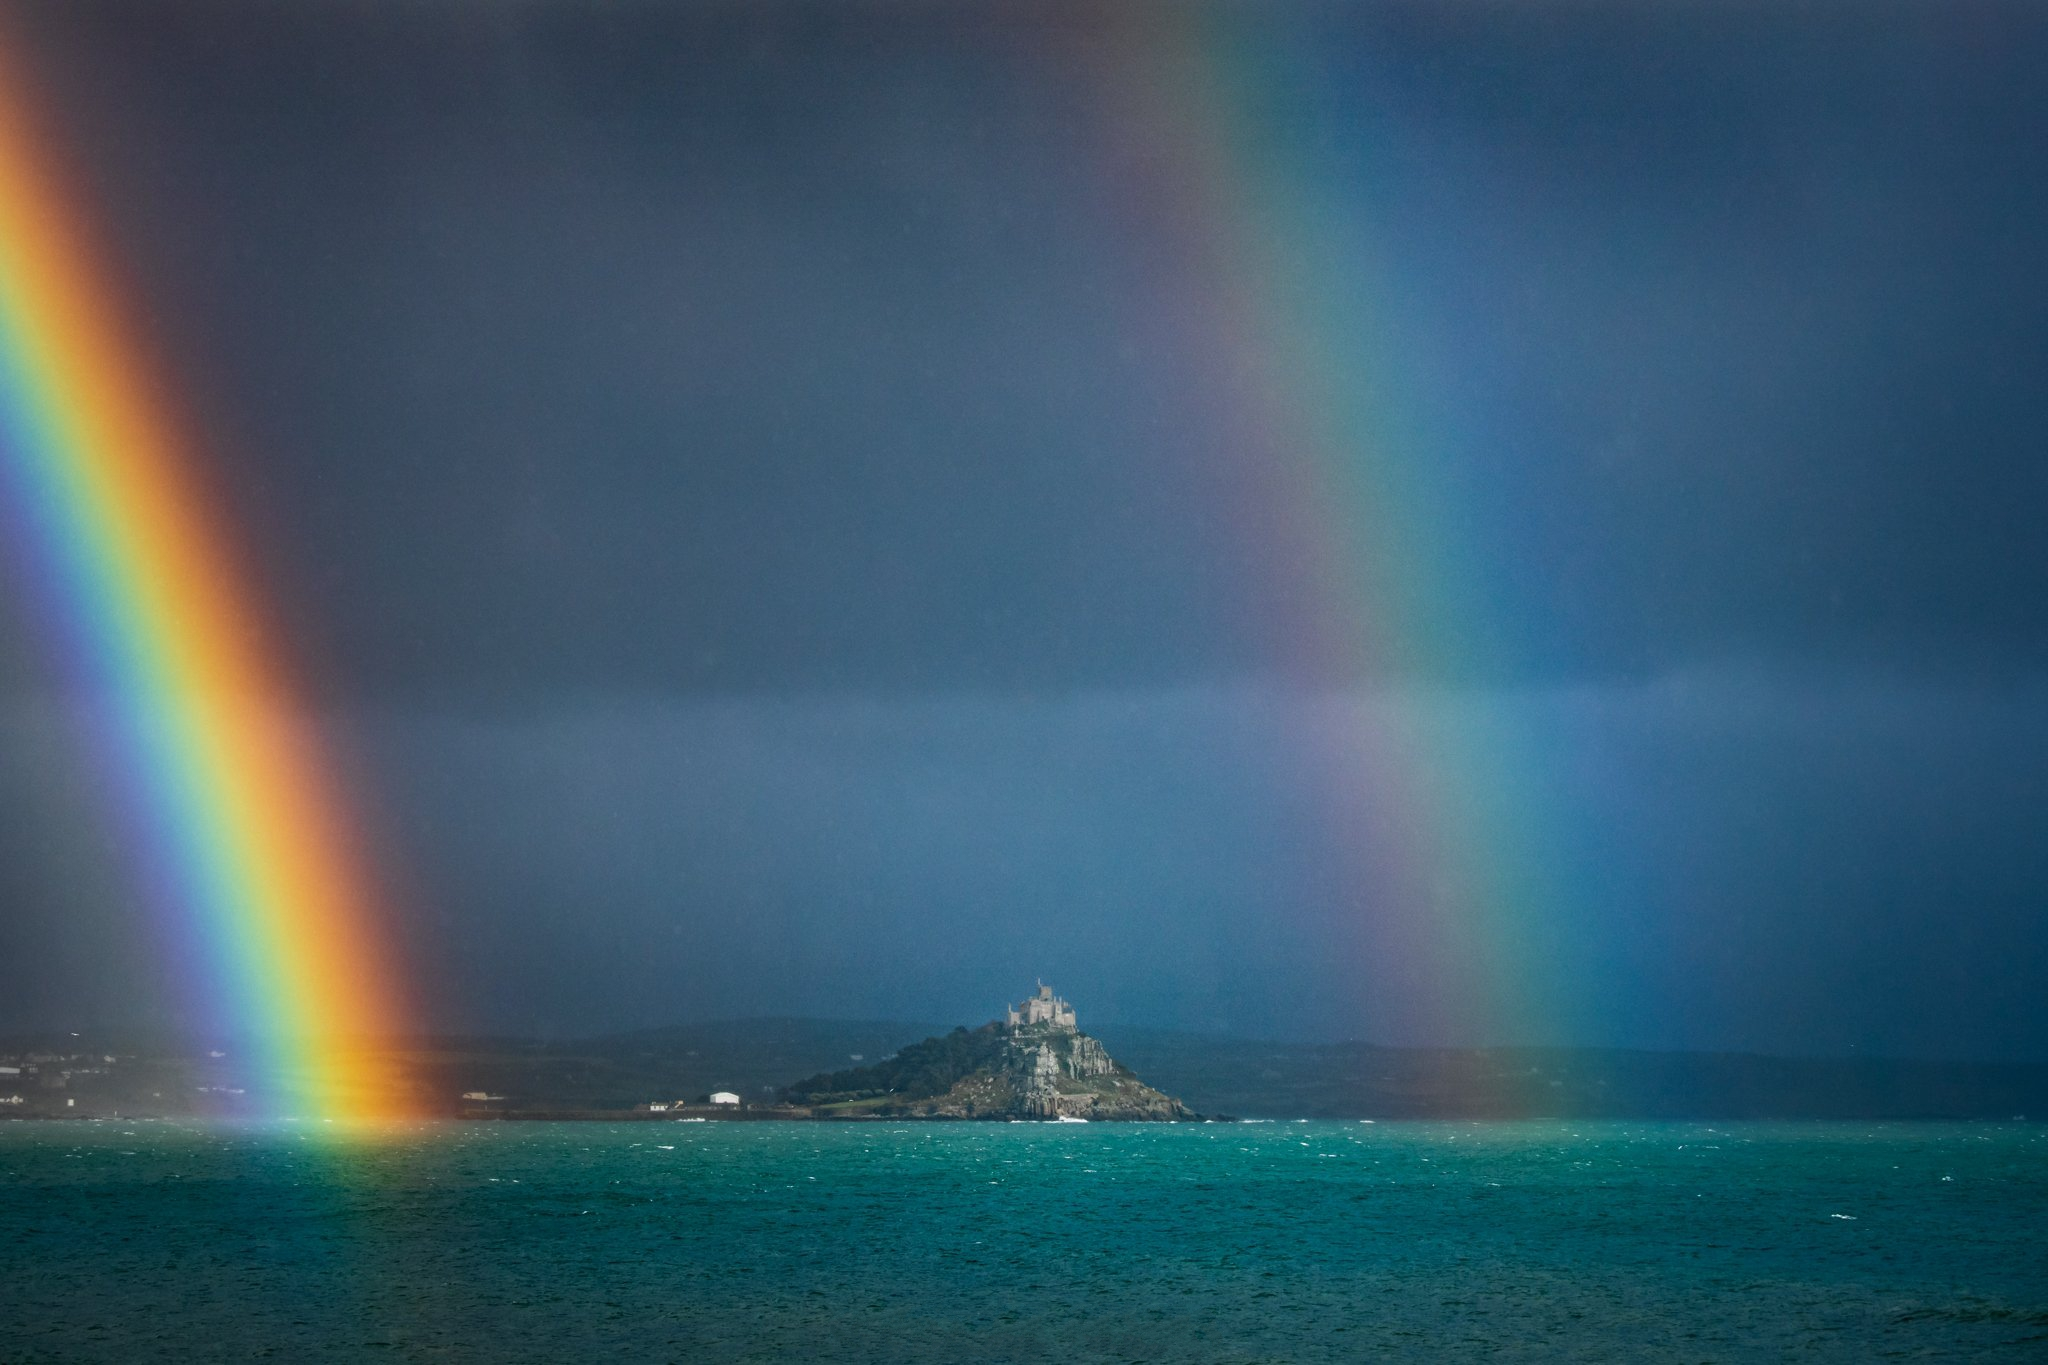 Double rainbow over St. Michaels Mount, certainly a pot of gold up Lord Mountbattens ass